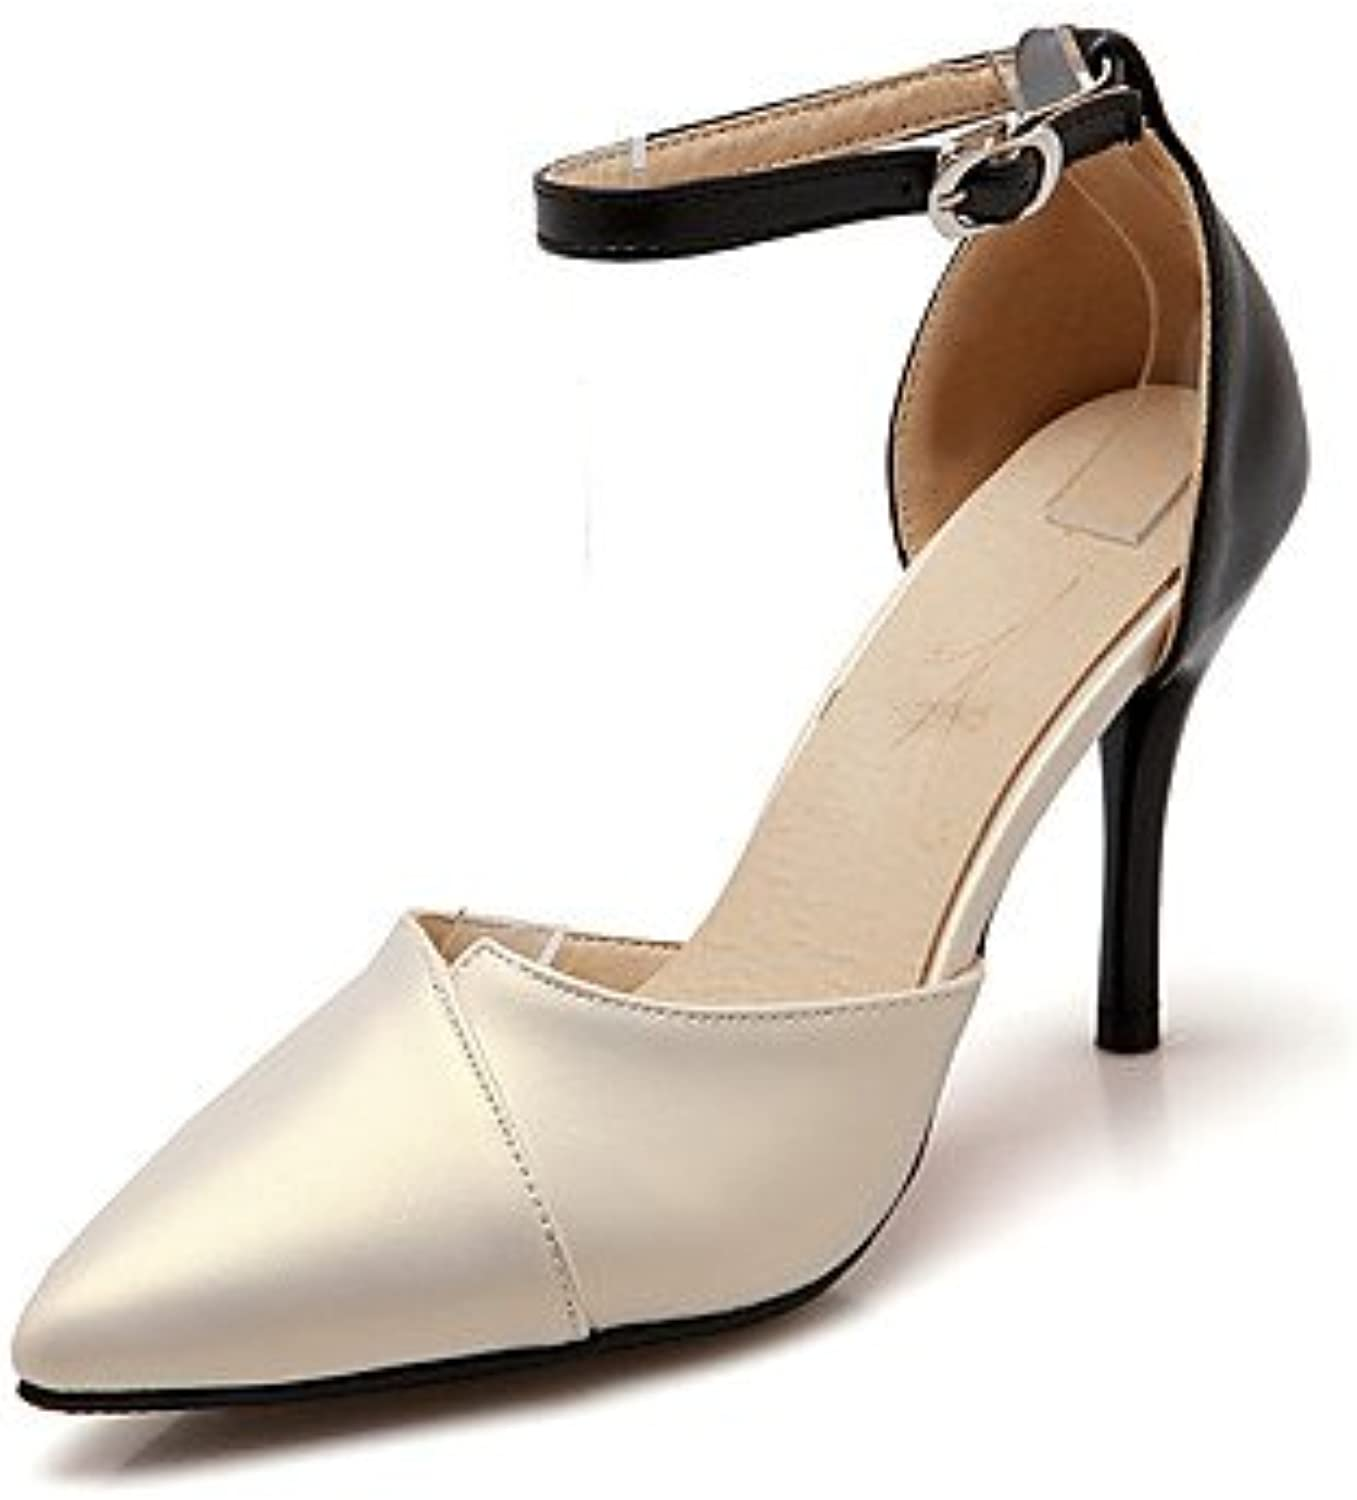 Zormey Sandals Summer Club Shoes D'Orsay &Amp; Two-Piece Leatherette Wedding Party &Amp; Evening Dress Stiletto...